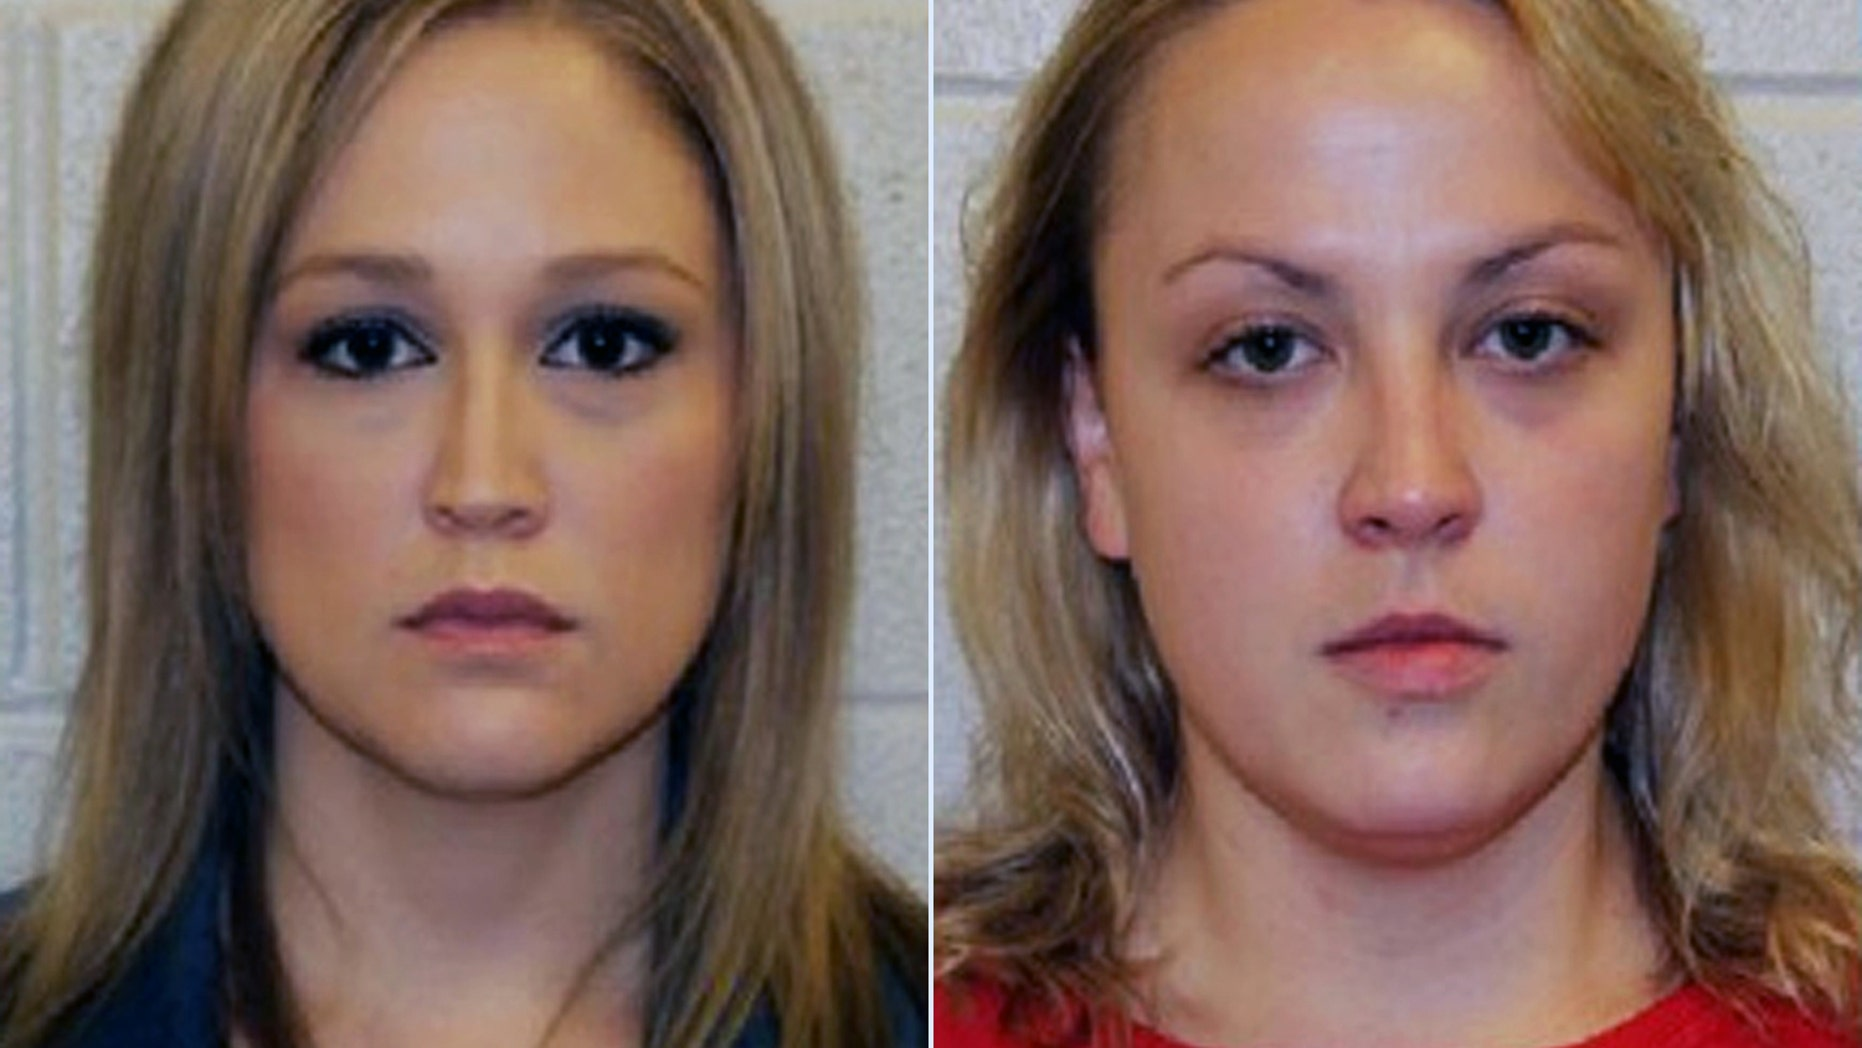 Shelley Dufresne, left, 32, and Rachel Respess, 24, were arrested after allegedly having a threesome with a student.